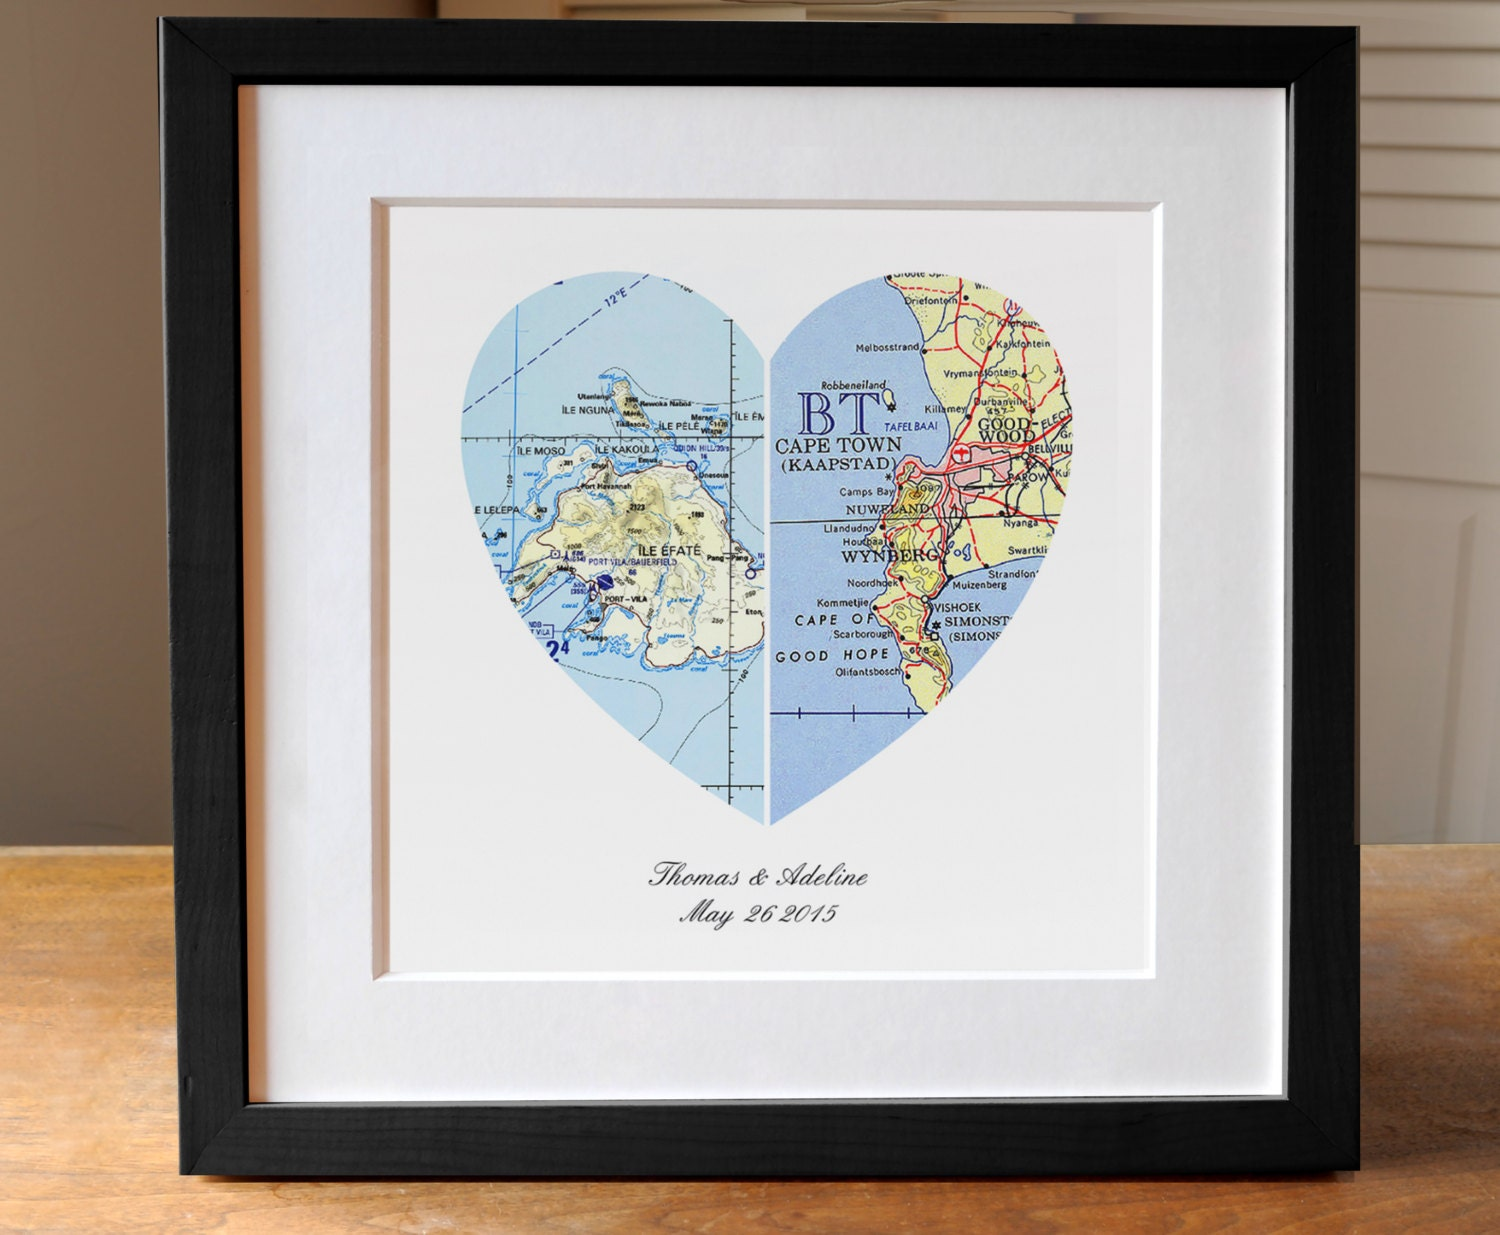 Wedding Photo Gift Ideas: Anniversary Gift Wedding Gift Map Art Heart Map Engagement